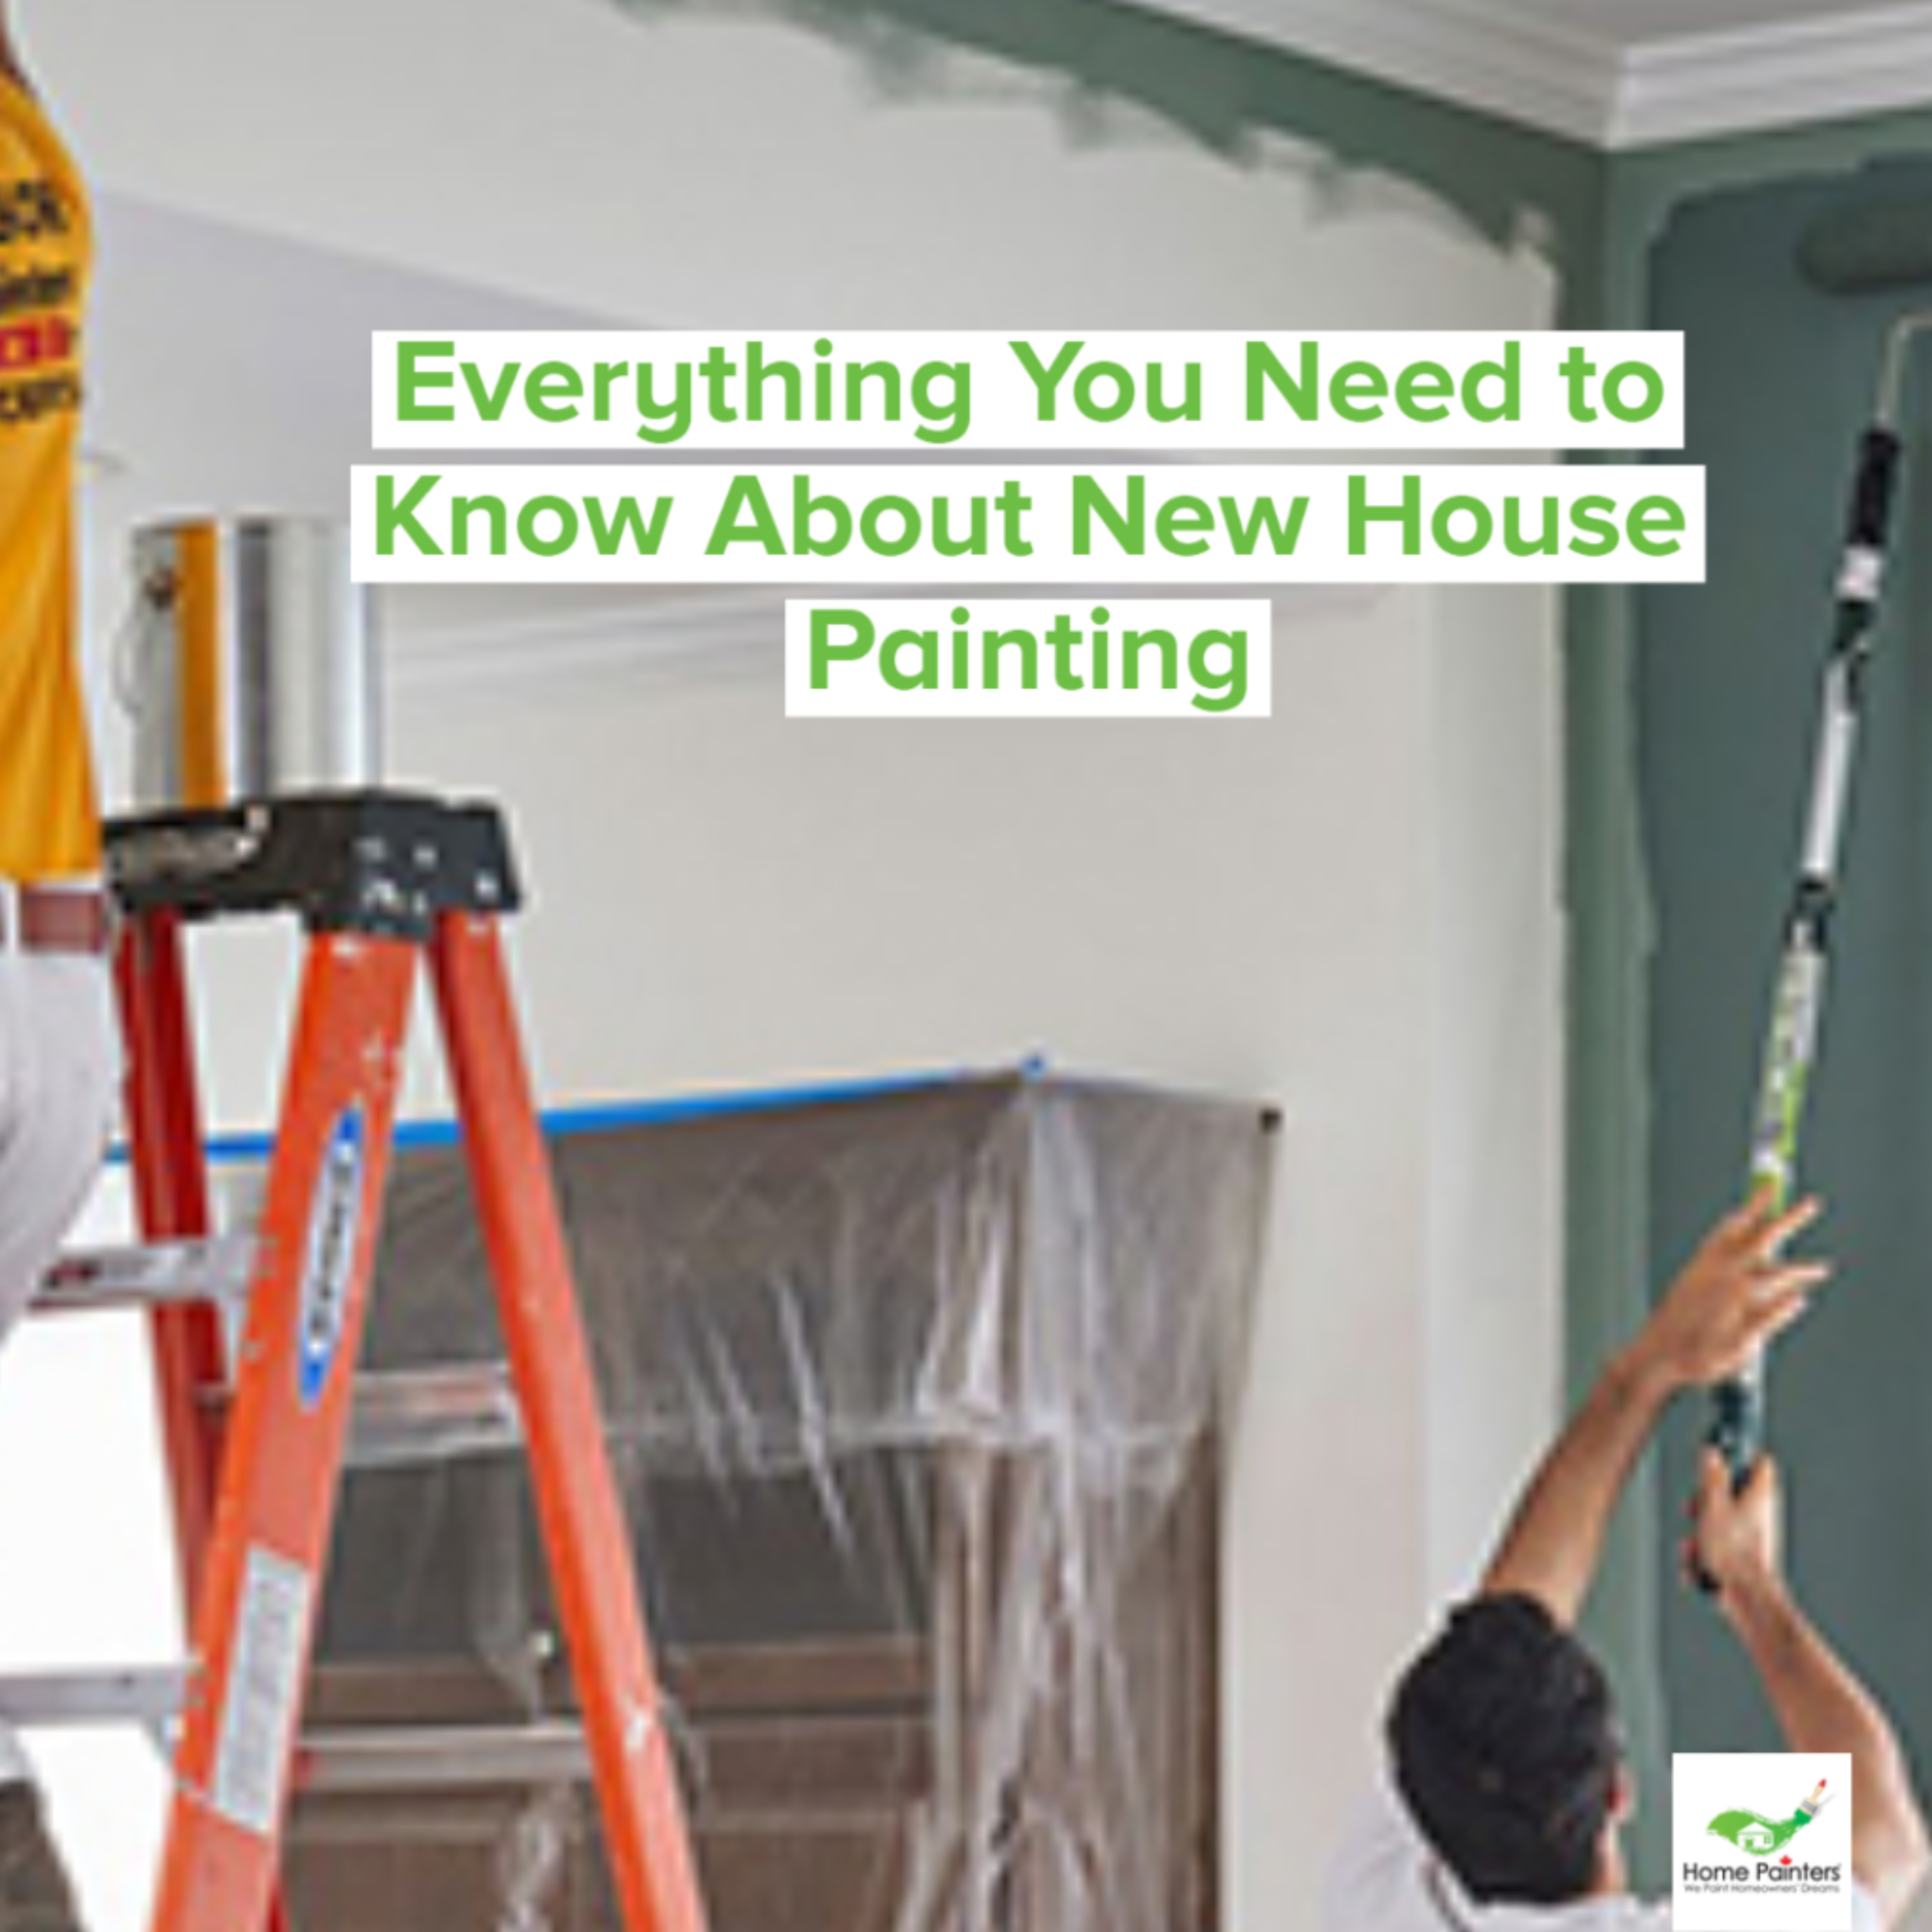 Everything you need to know about new house painting